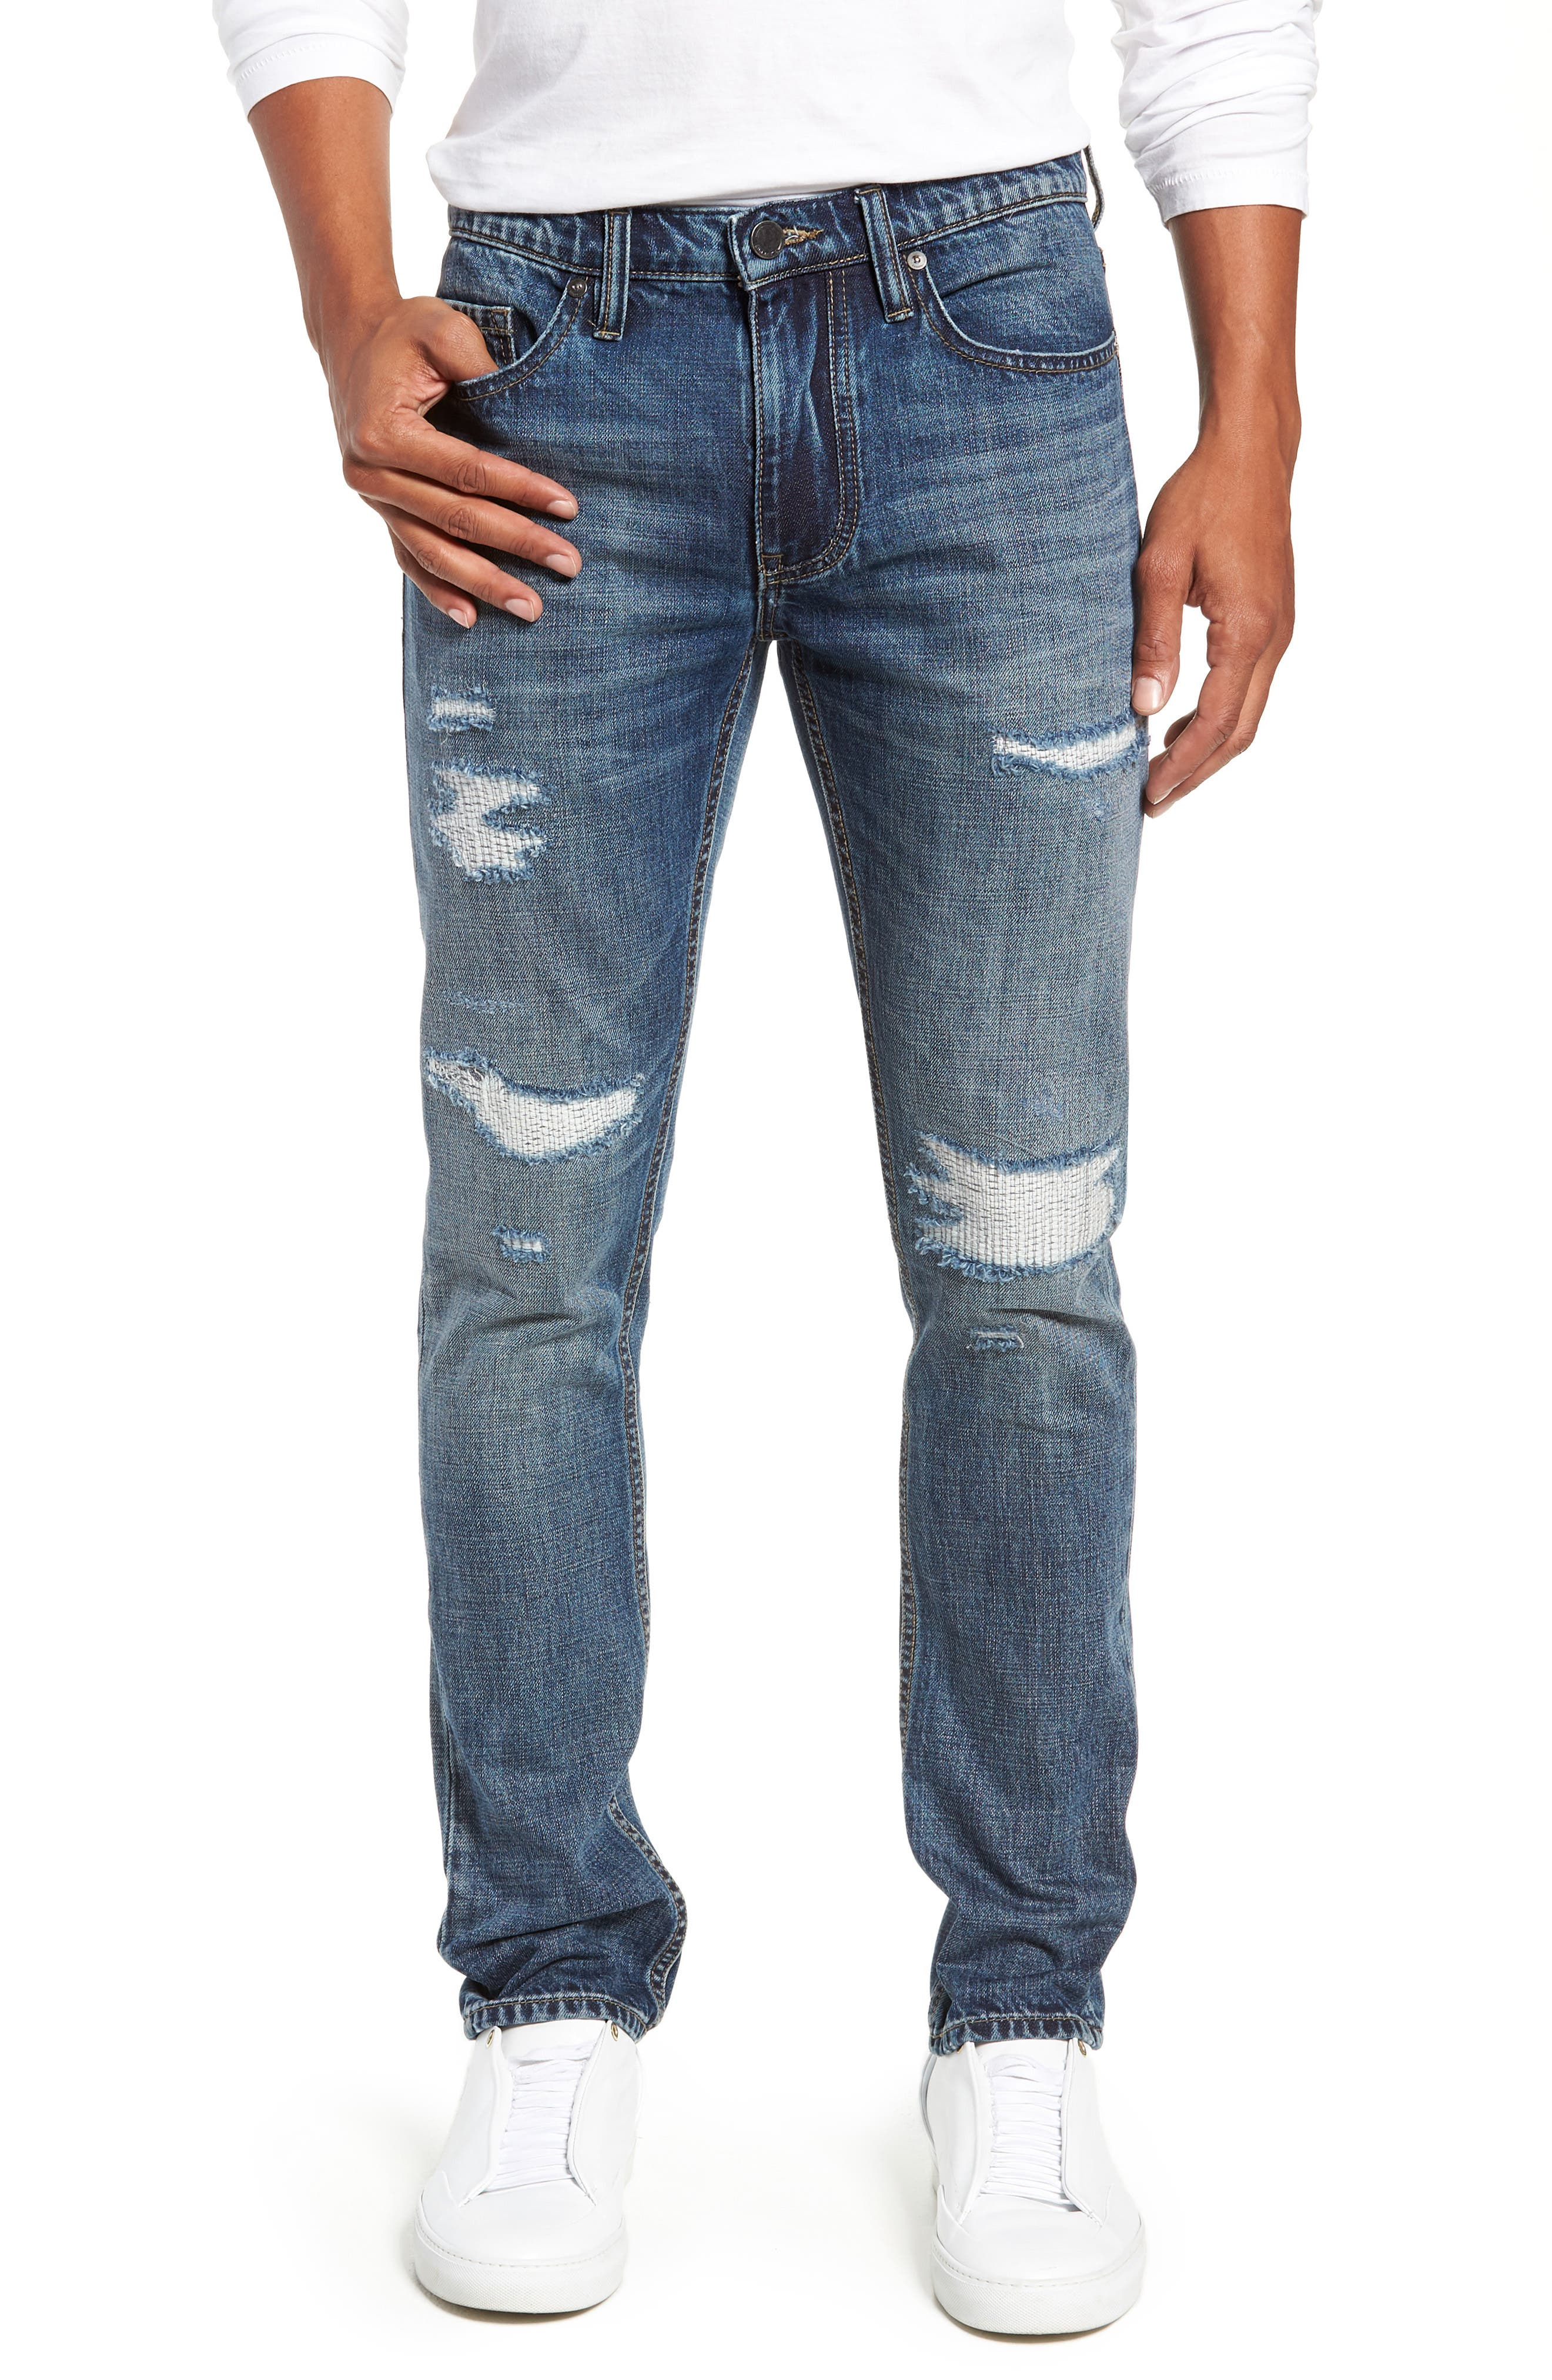 Wooster Slim Fit Distressed Selvedge Jeans,                             Main thumbnail 1, color,                             PERMISSIBLE HOT